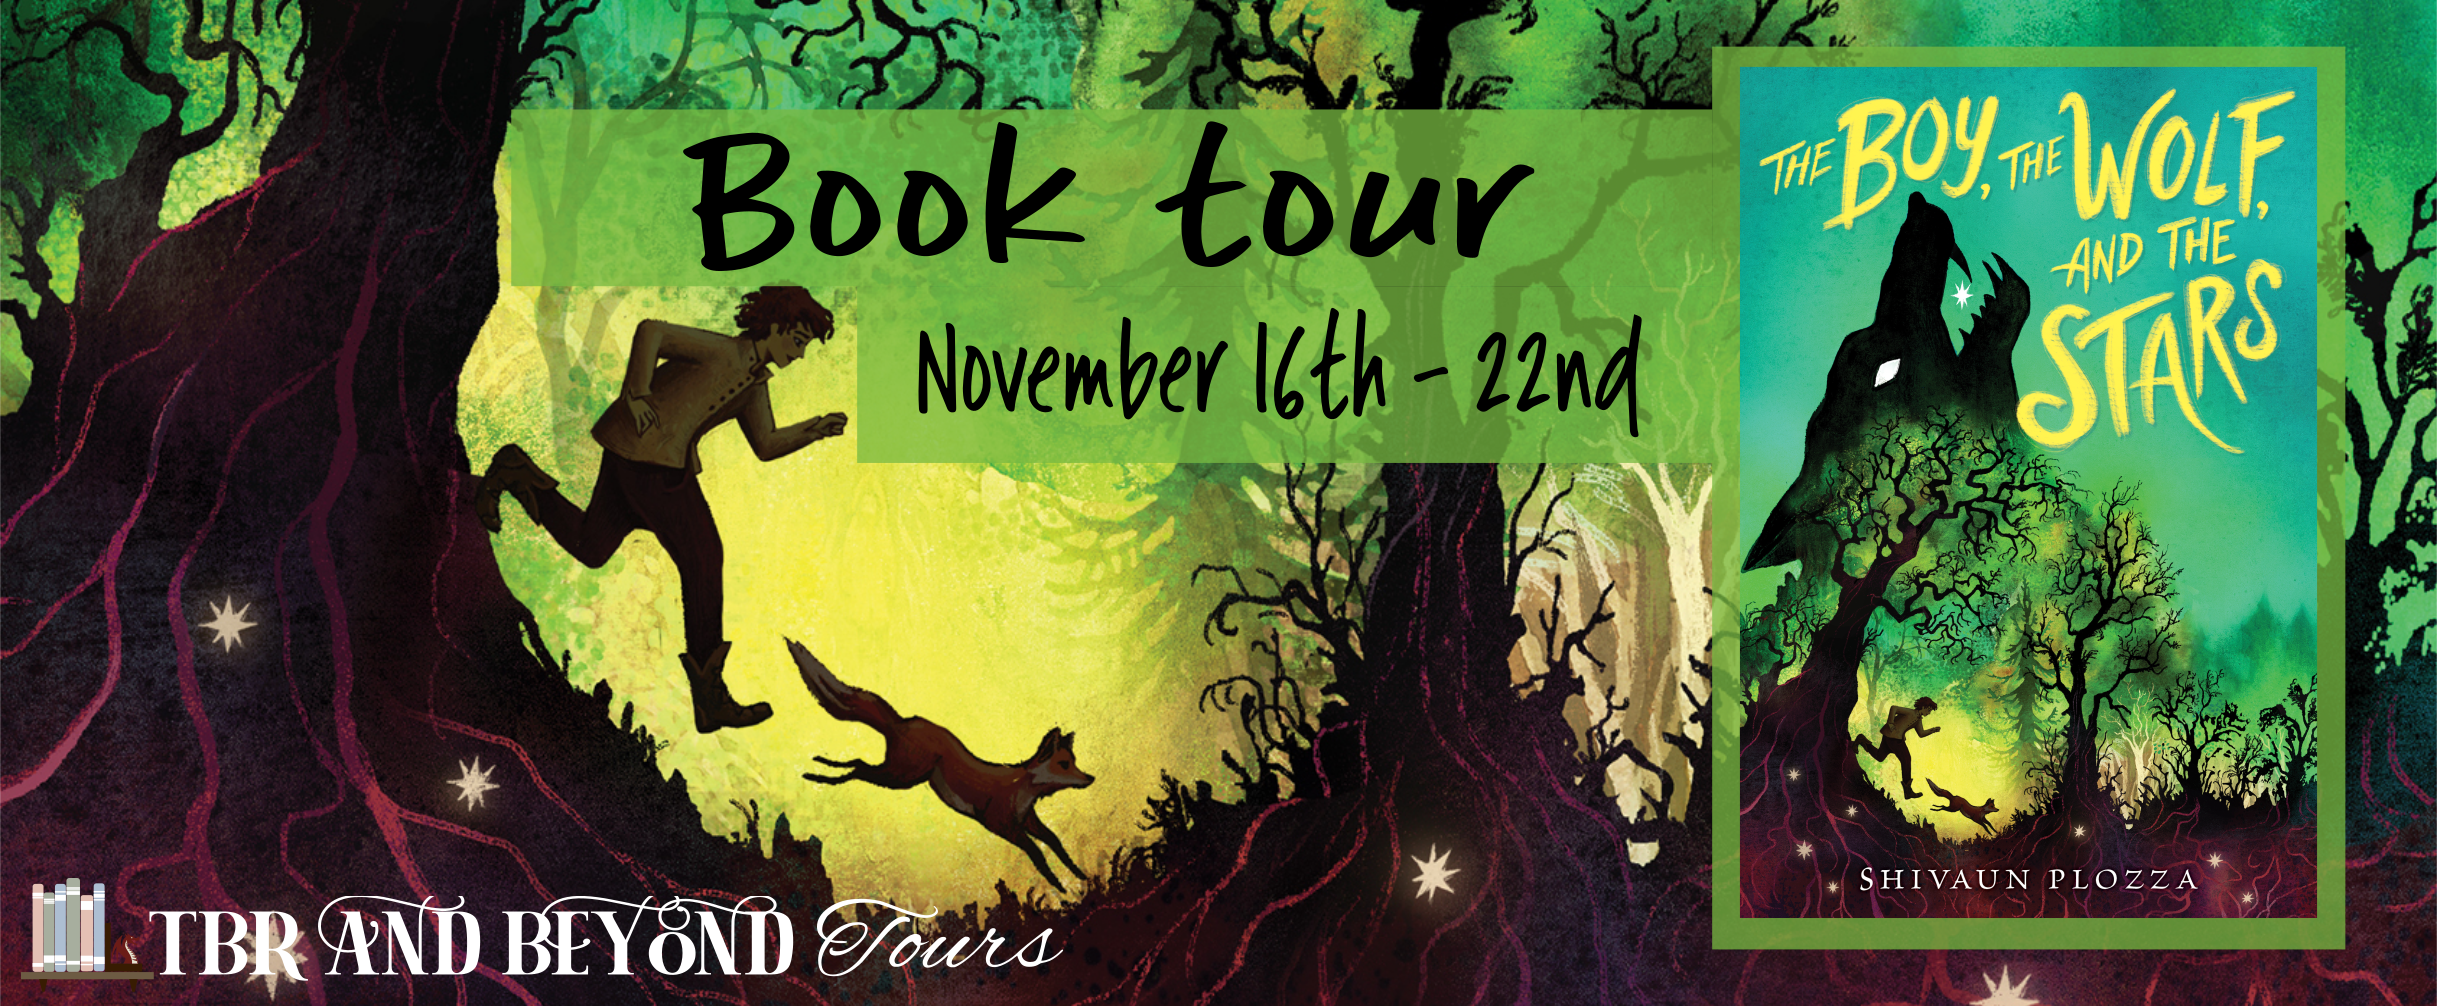 Blog Tour: The Boy, The Wolf, and The Stars by Shivaun Plazza (Interview + Giveaway!)